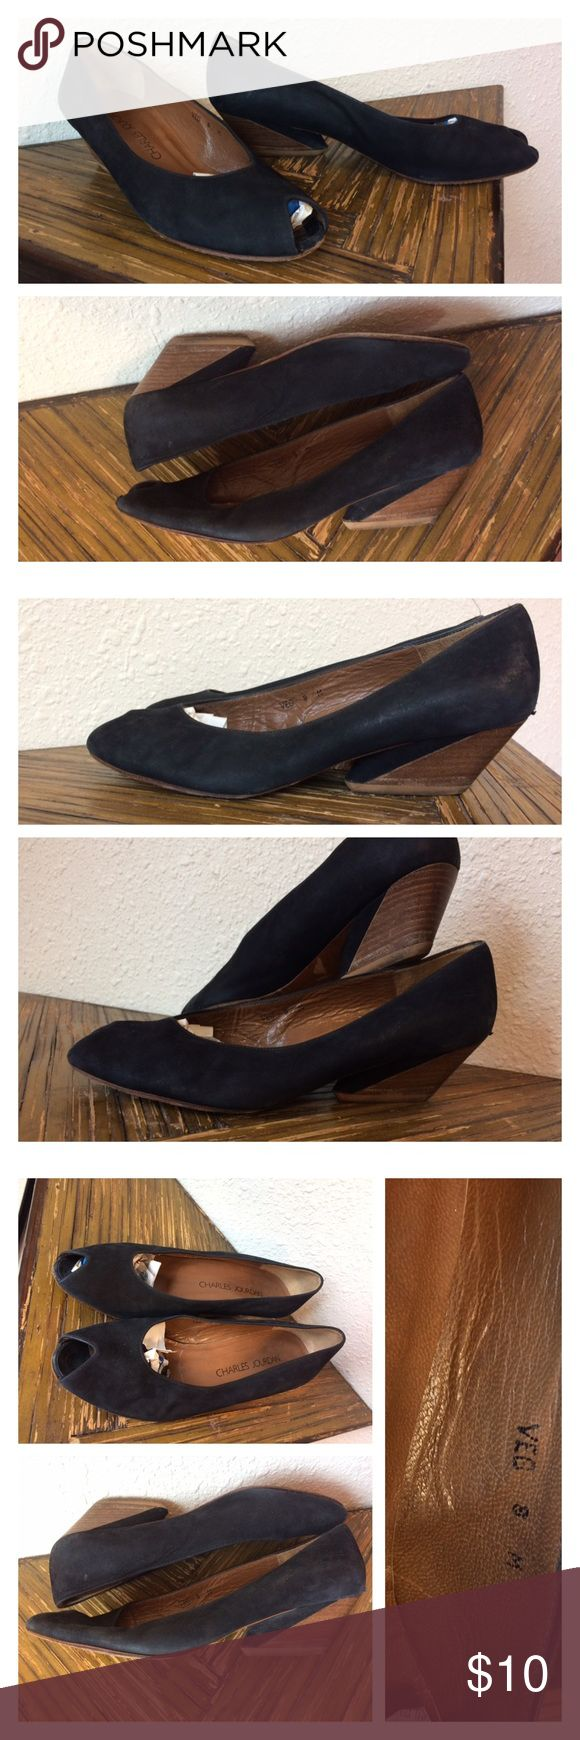 "Black Brown Leather Charles Jourdan Two Tone Pumps Adorable two tone charles jourdan pumps w black and brown wooden asymmetric heel Size 8M. Fits true to size.  Black suede -2"" heel. Few scuffs here n there but overall good condition Charles Jourdan Shoes Heels"